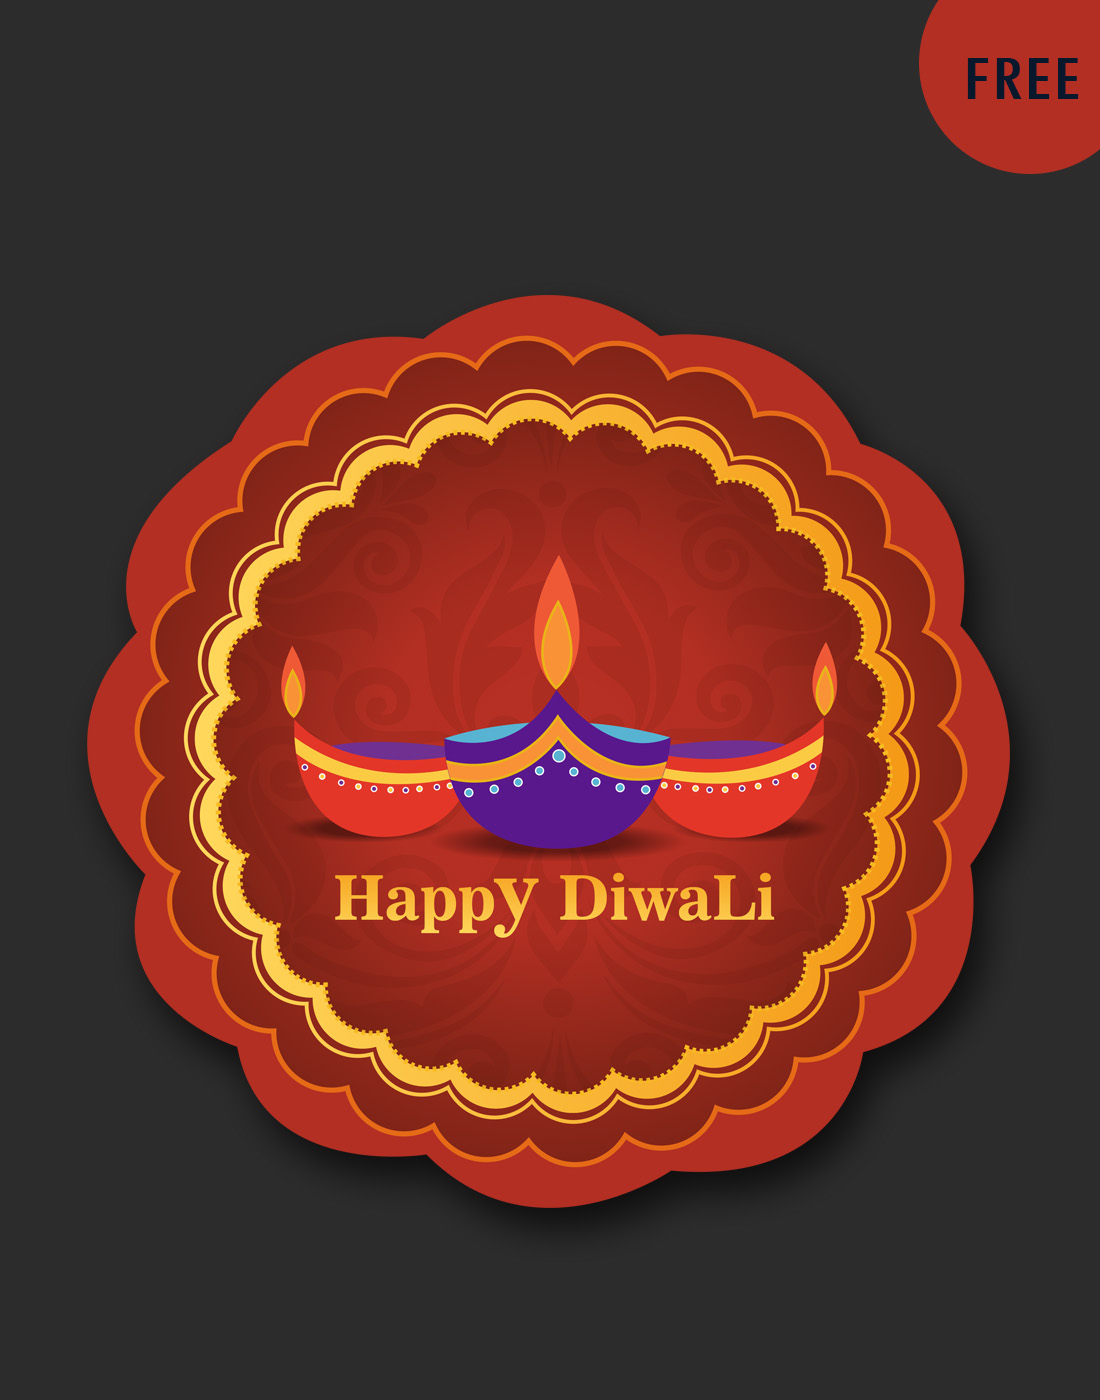 diwali badge